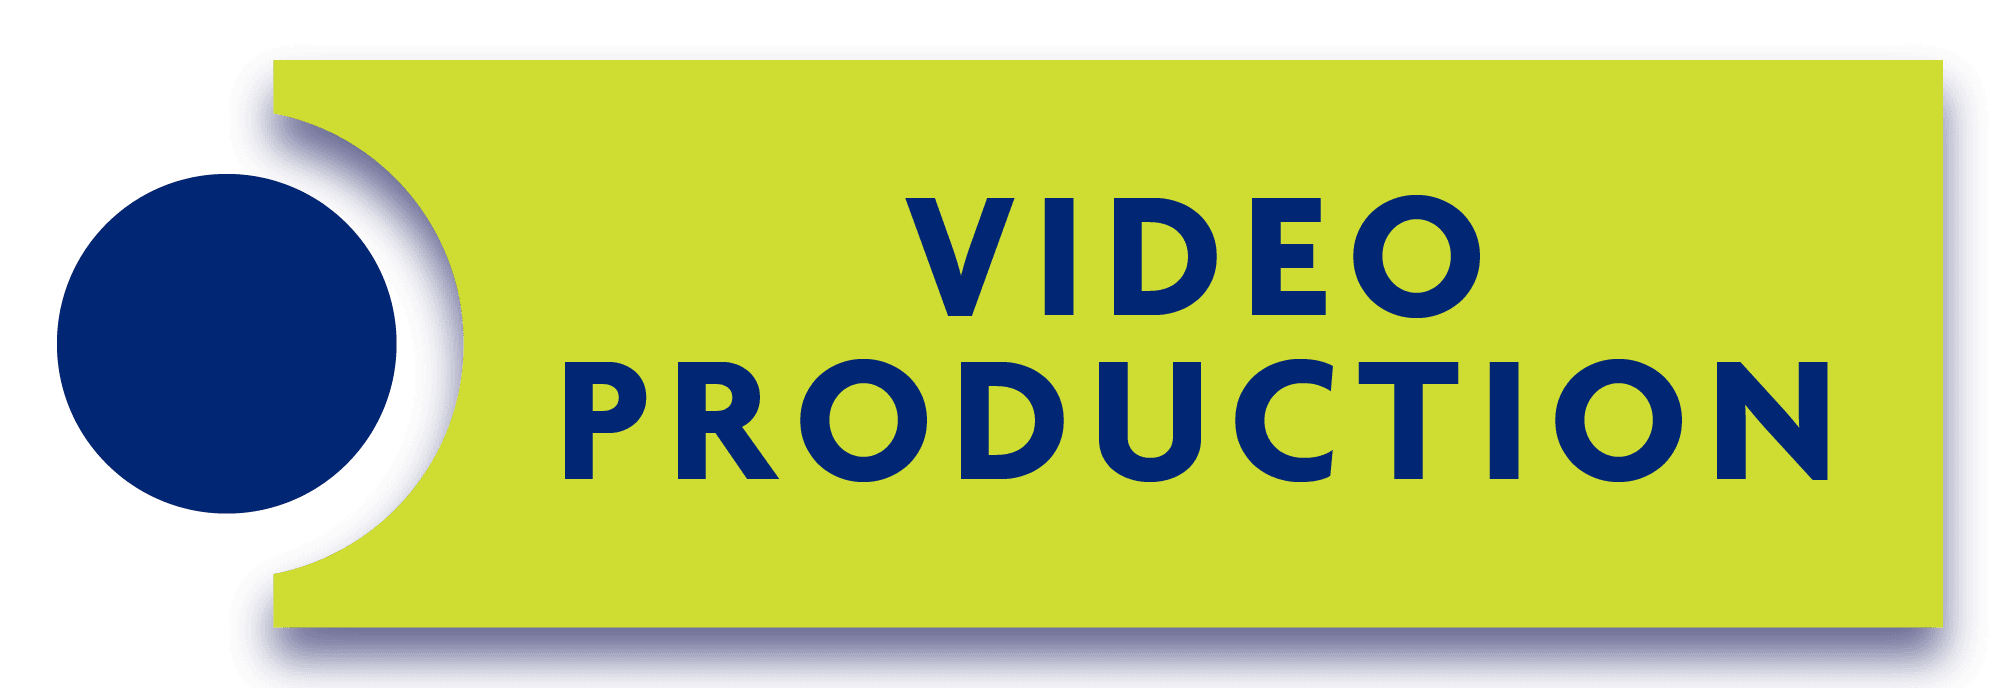 Video Production